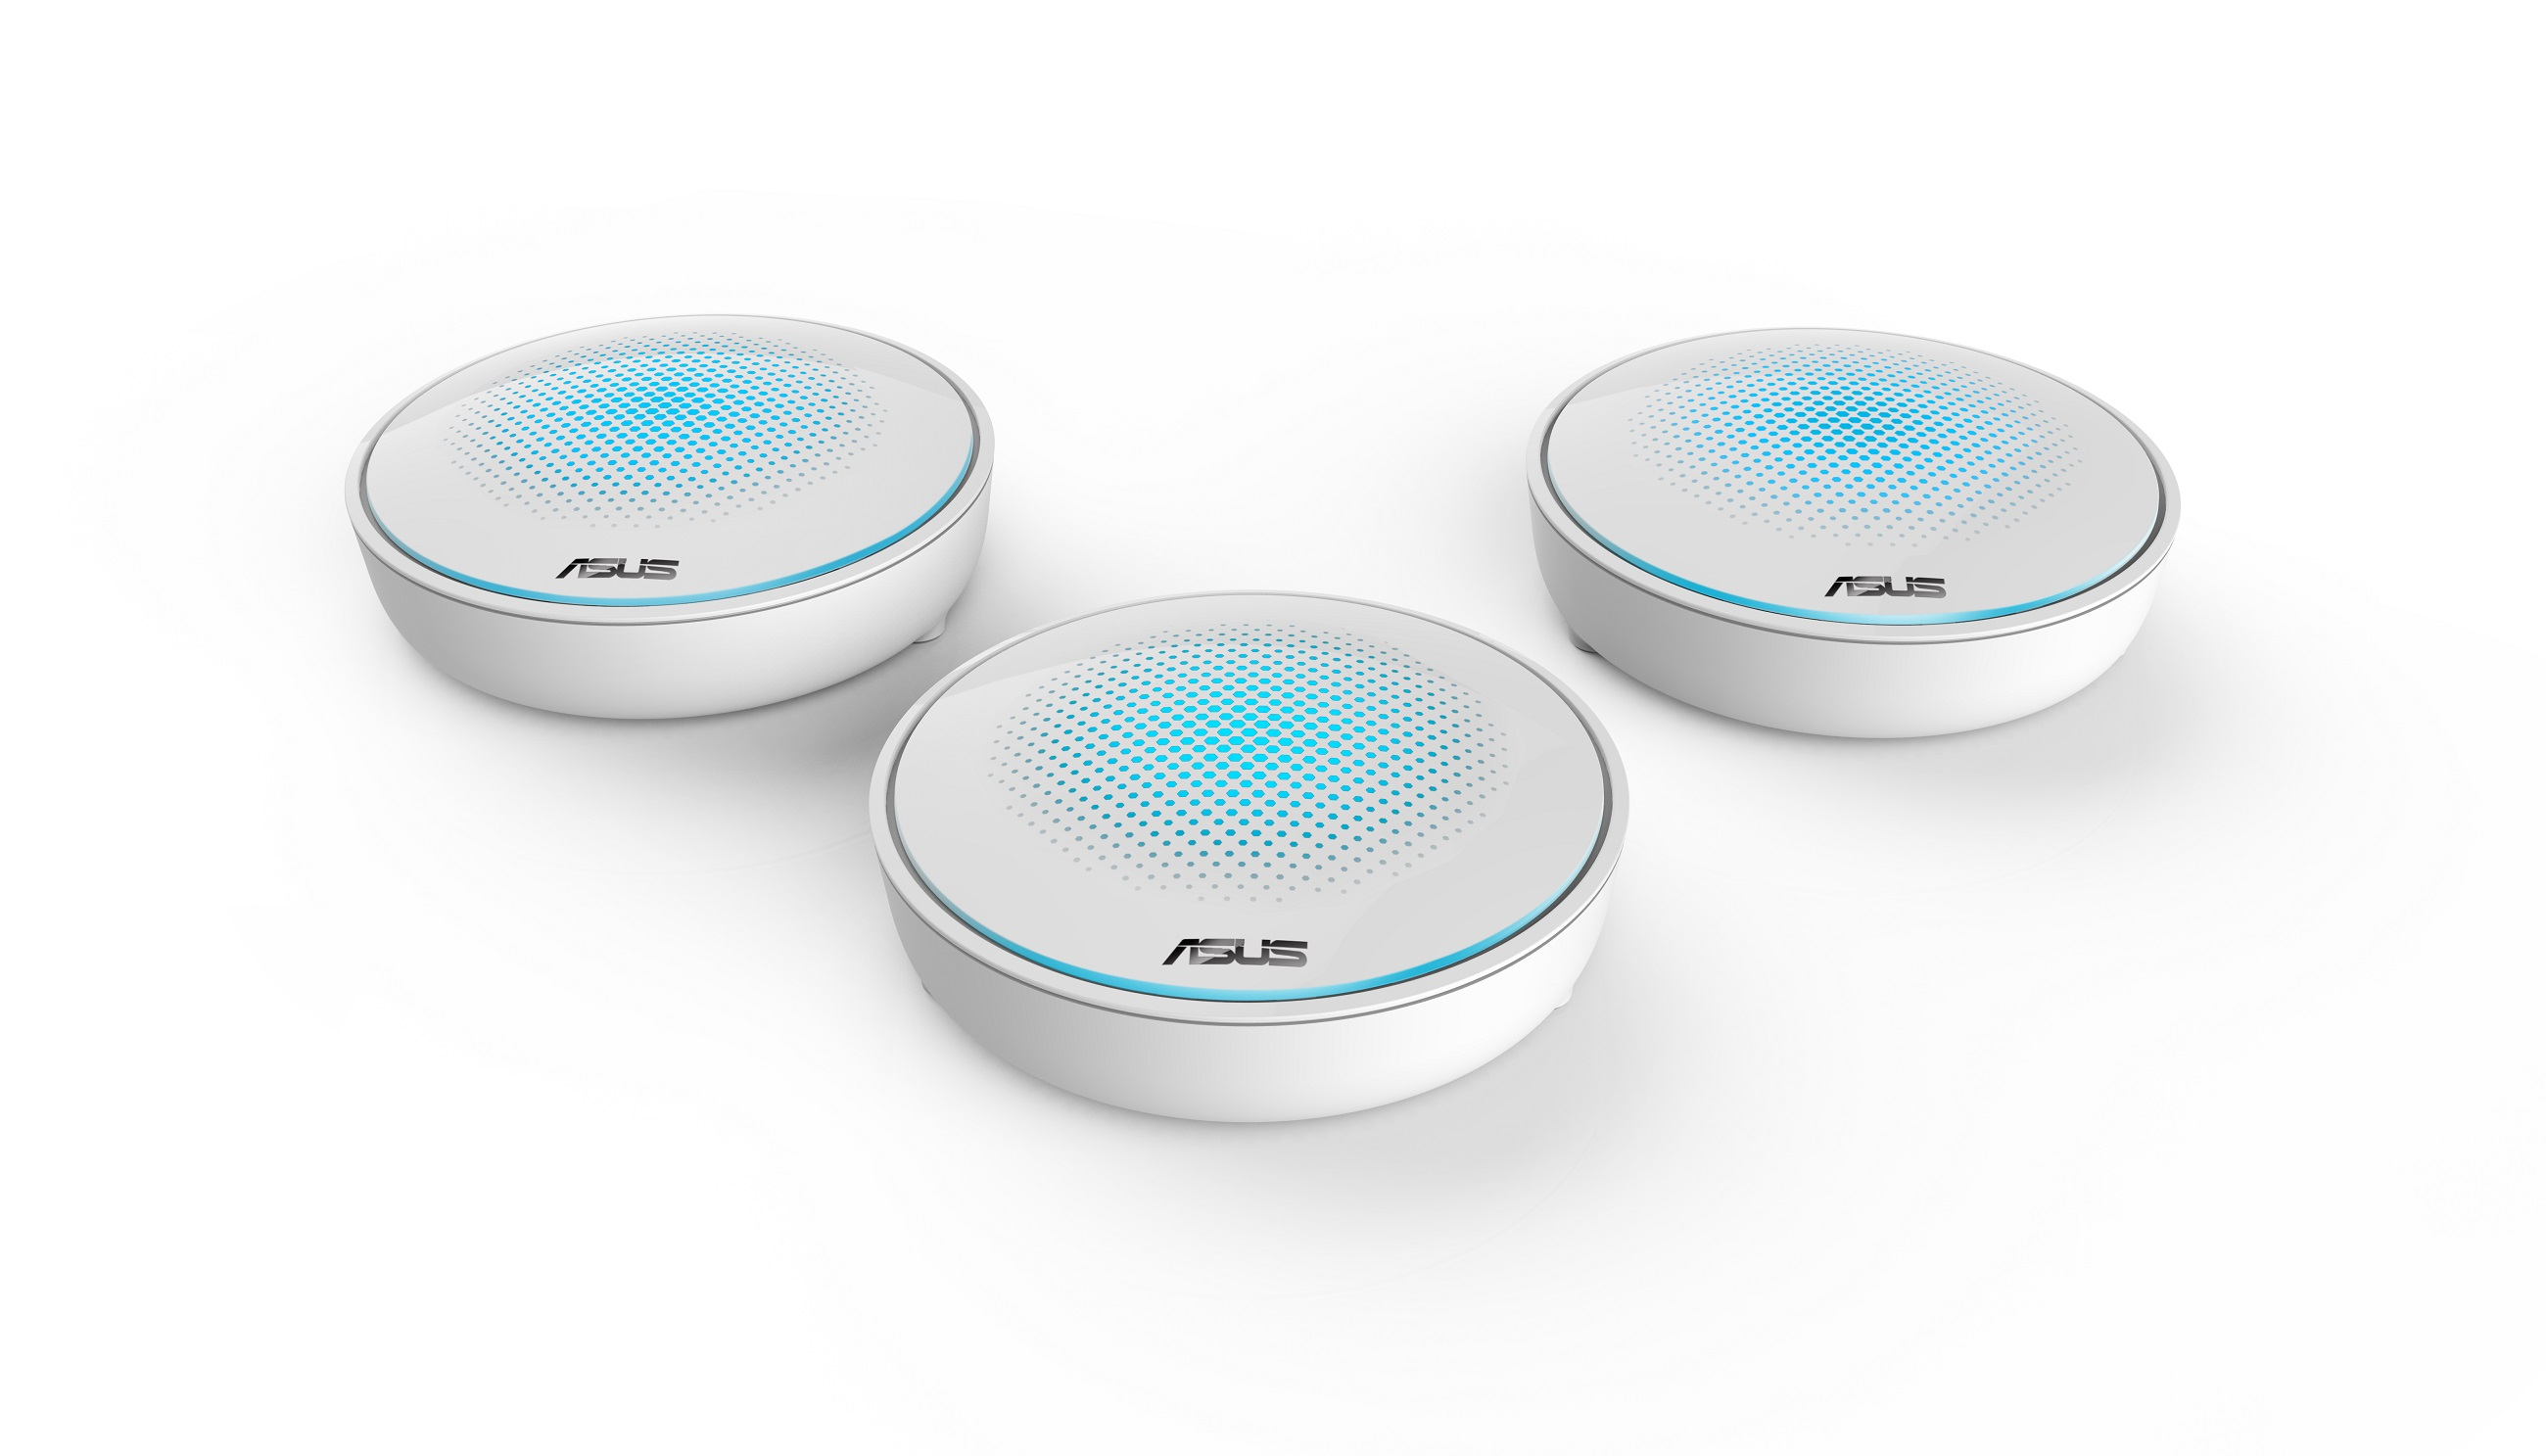 ASUS Lyra new Wi-Fi system delivers ultrafast Wi-Fi to every corner of the home - Alvinology